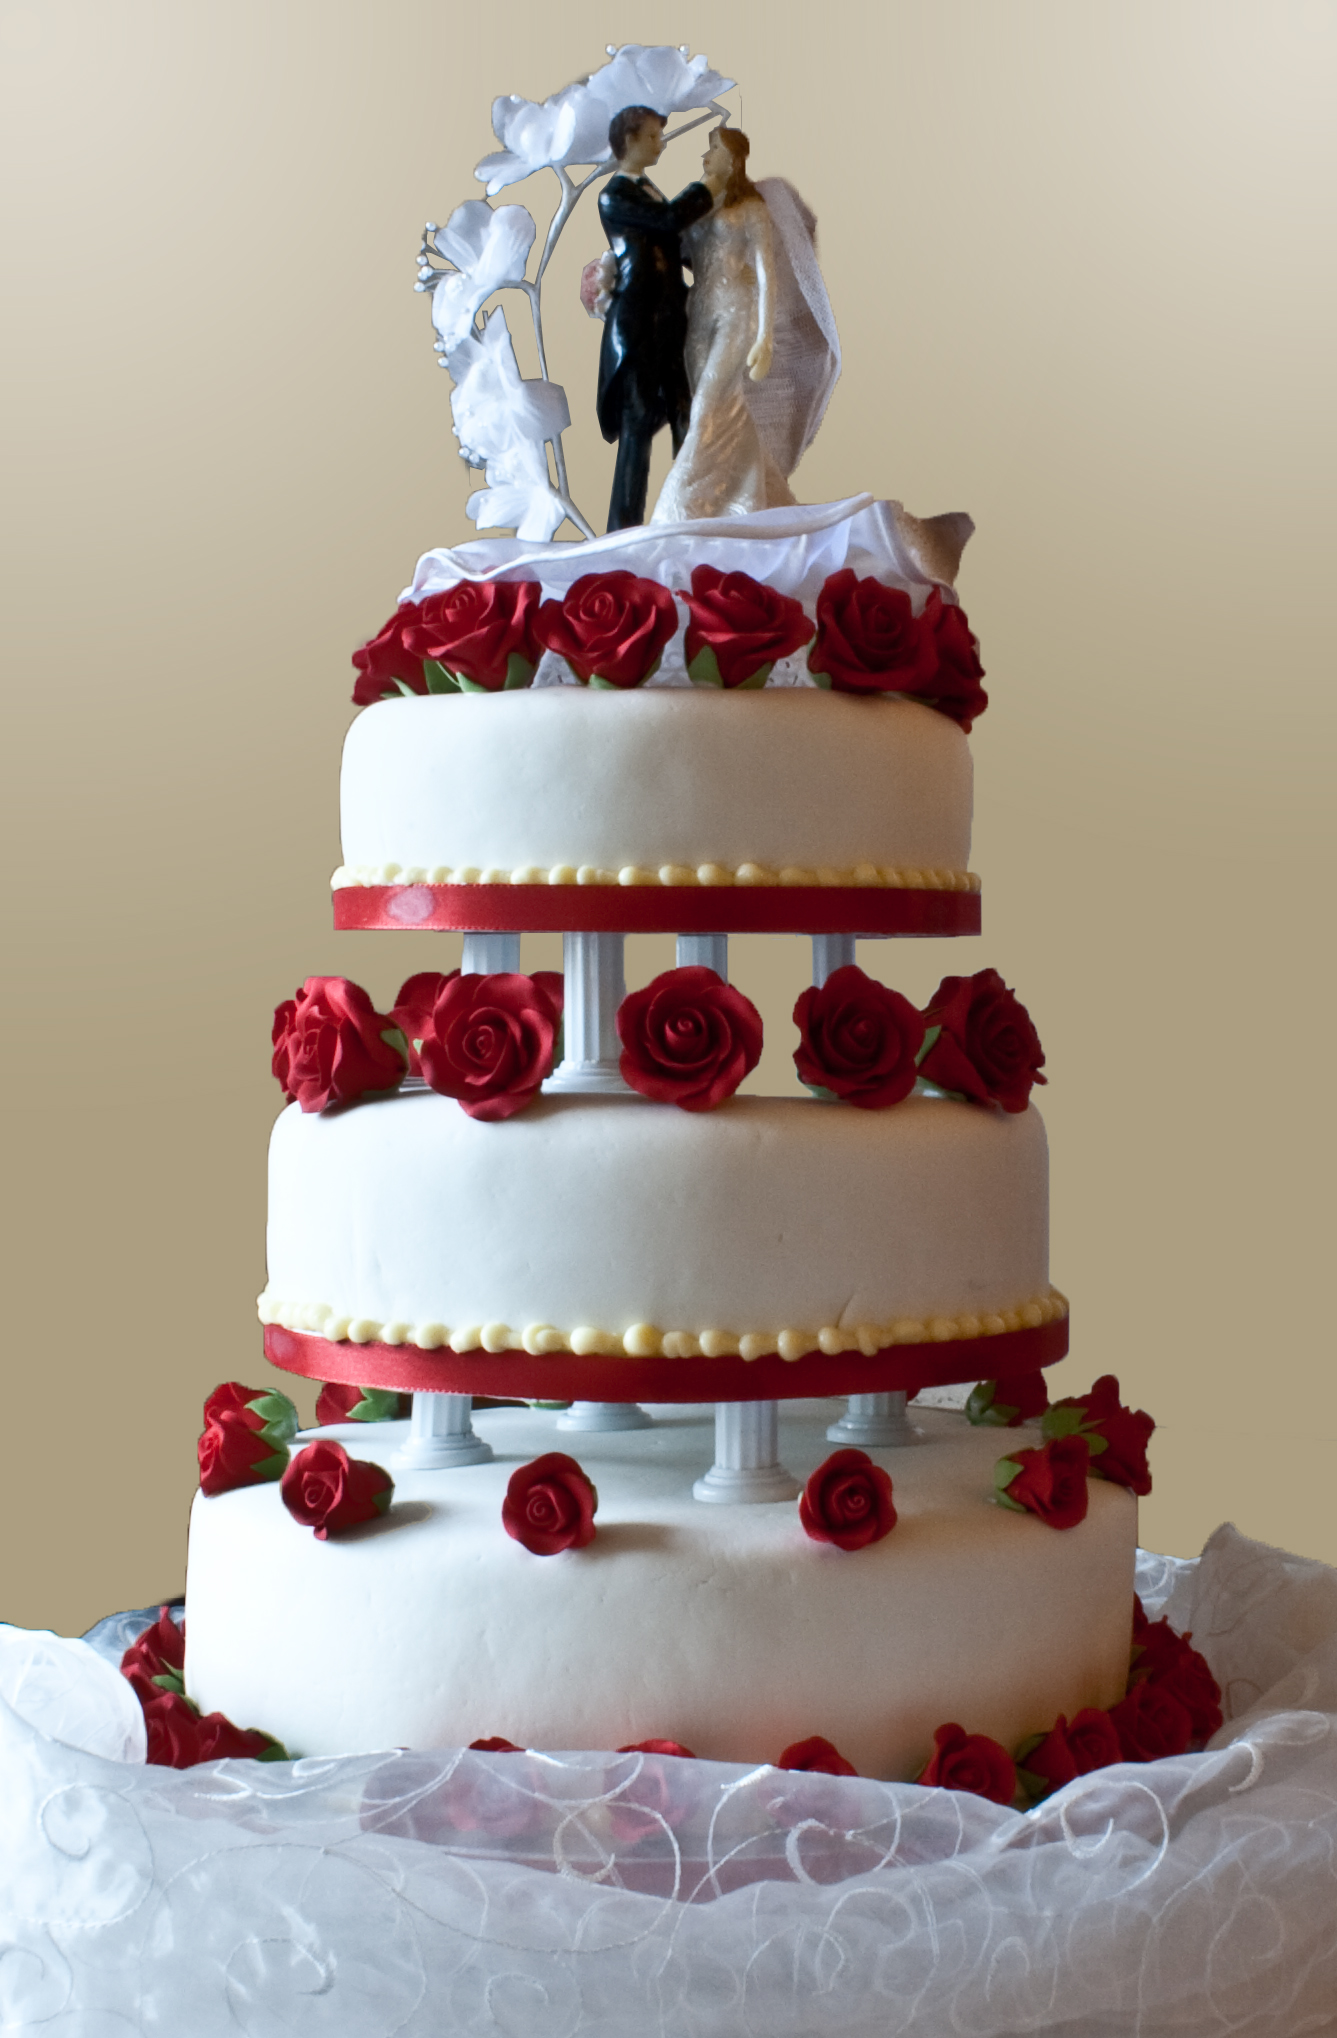 Bride who in cake